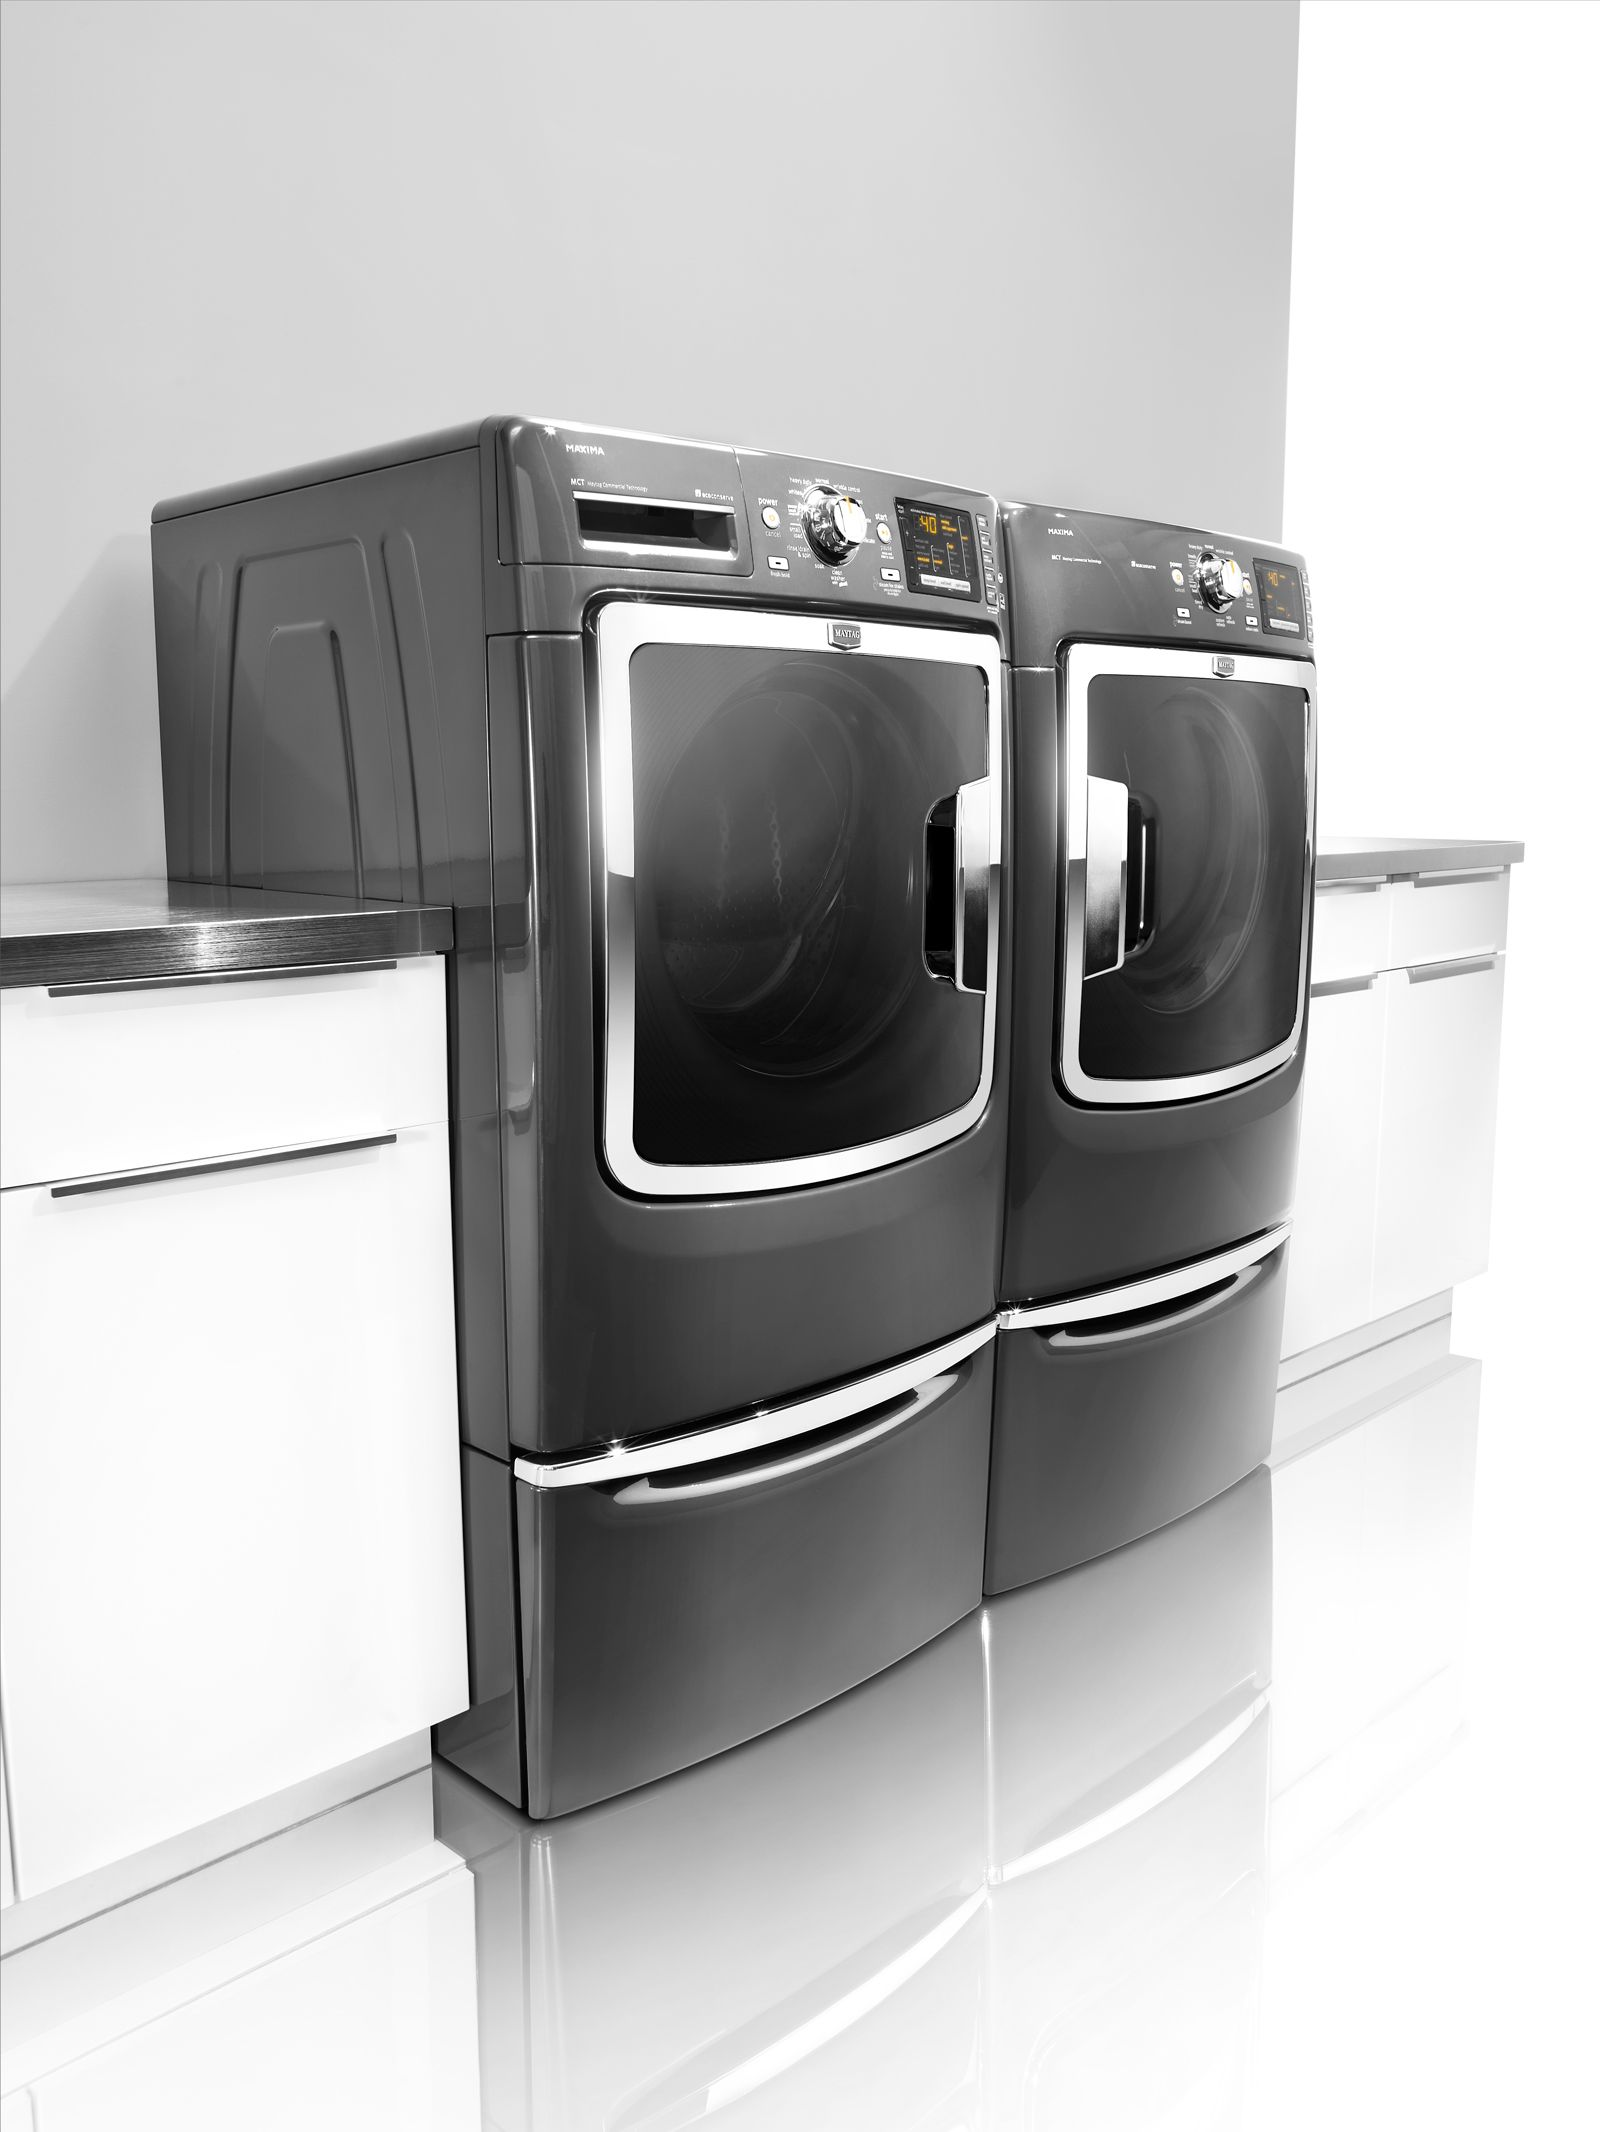 additional dryer by hidden front load chrome maytag for in and ms cleveland pedestal shadow with may products washer storage frivinwthpey